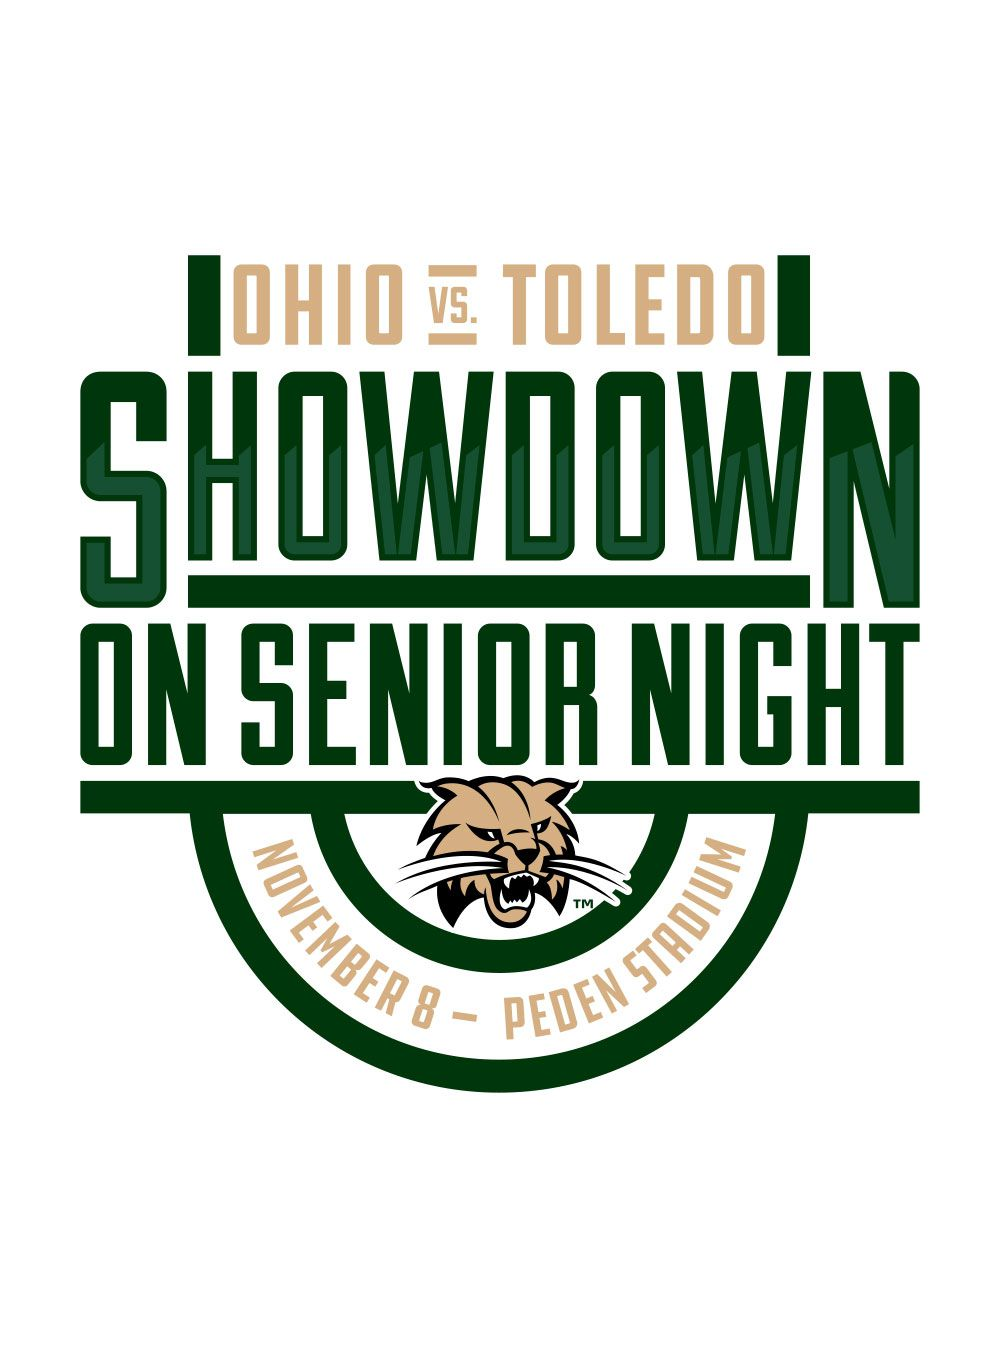 Showdown on Senior Night Logo<br><span>Ohio University</span>